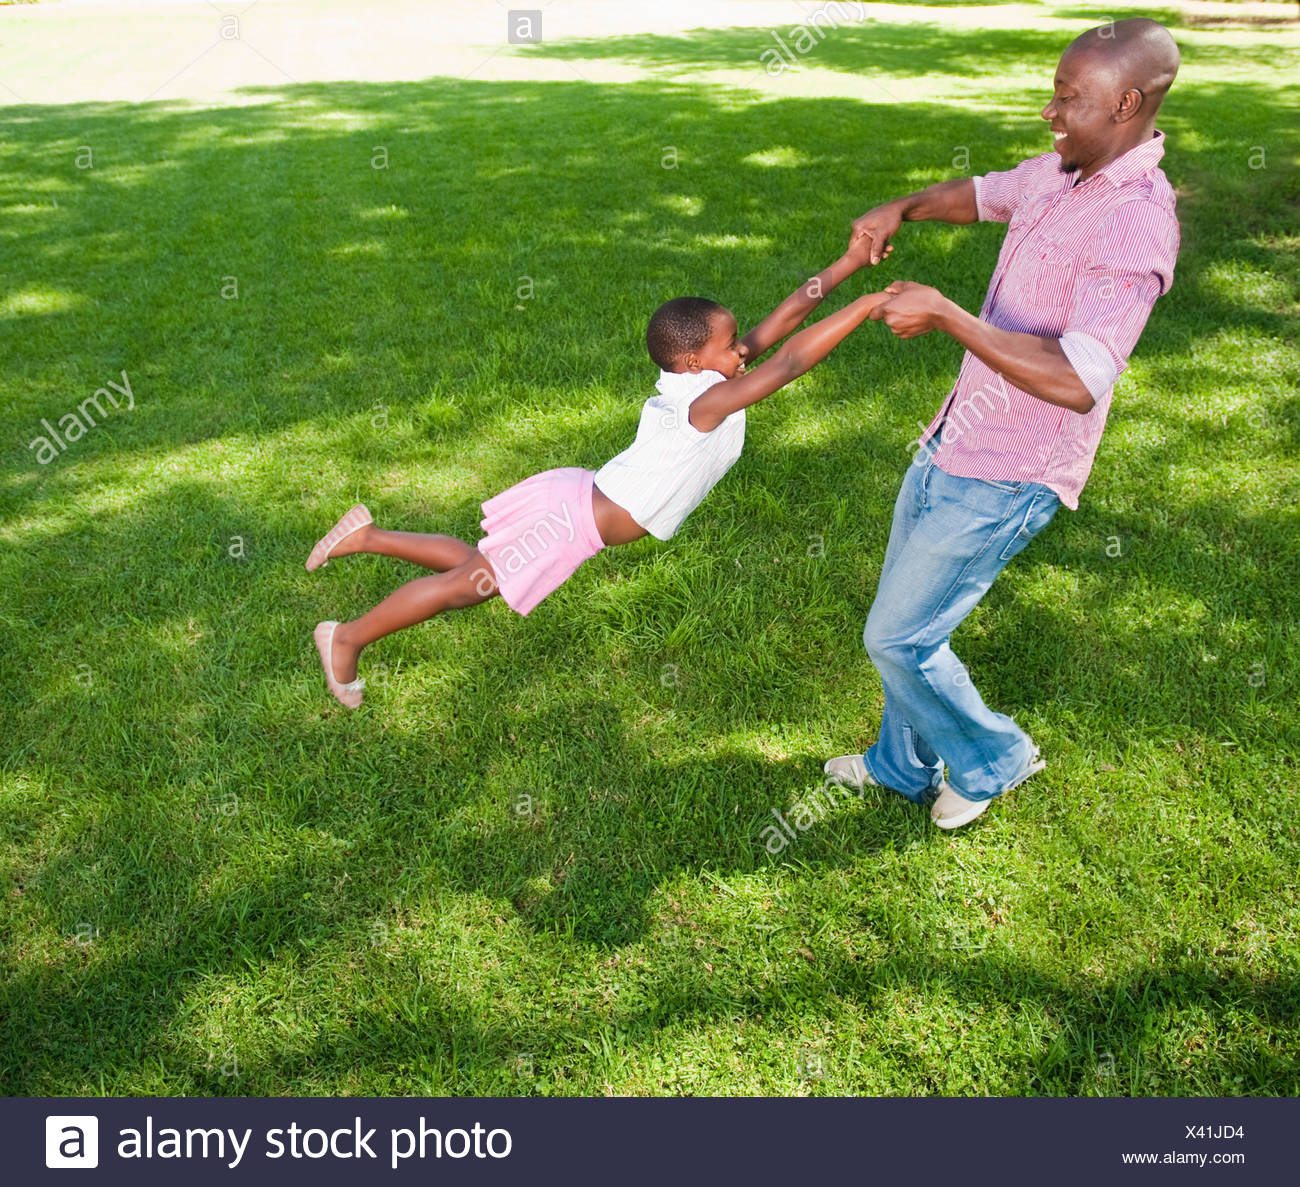 Father swinging daughter (8-9) on lawn in garden, Johannesburg, Gauteng Province, South Africa Stock Photo